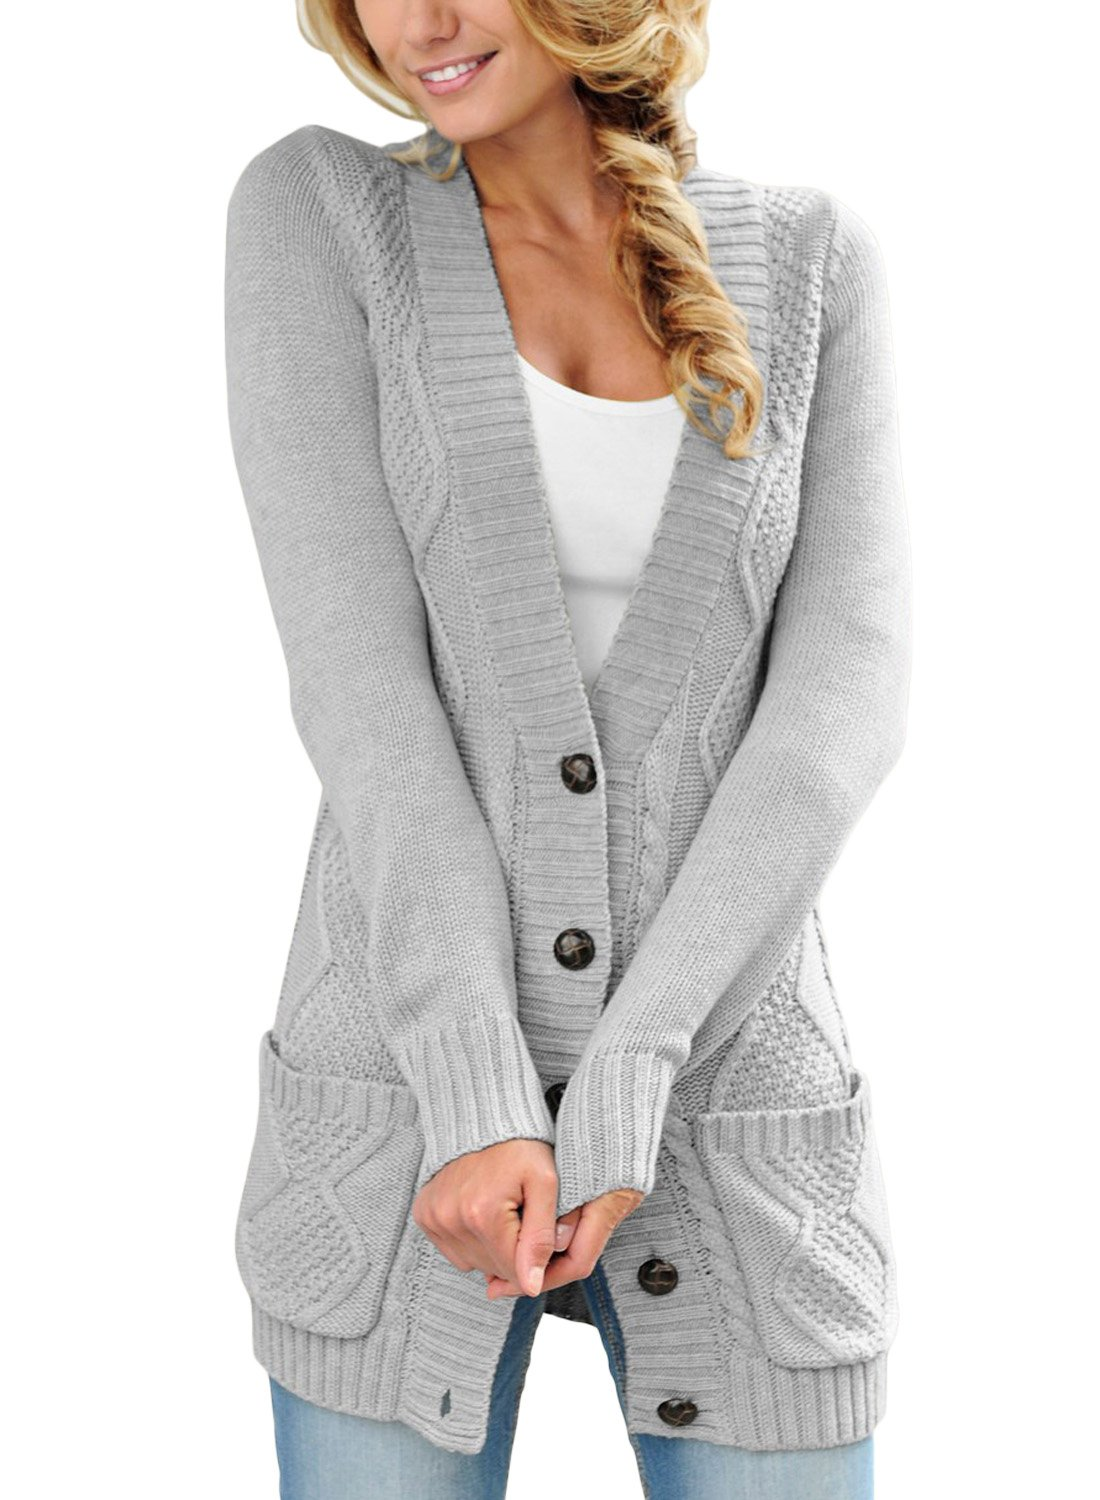 LOSRLY Women Open Front Cabel Knit Cardigan Button Down Long Sleeve Sweater Coat Outwear with Pockets-Gray XL 16 18